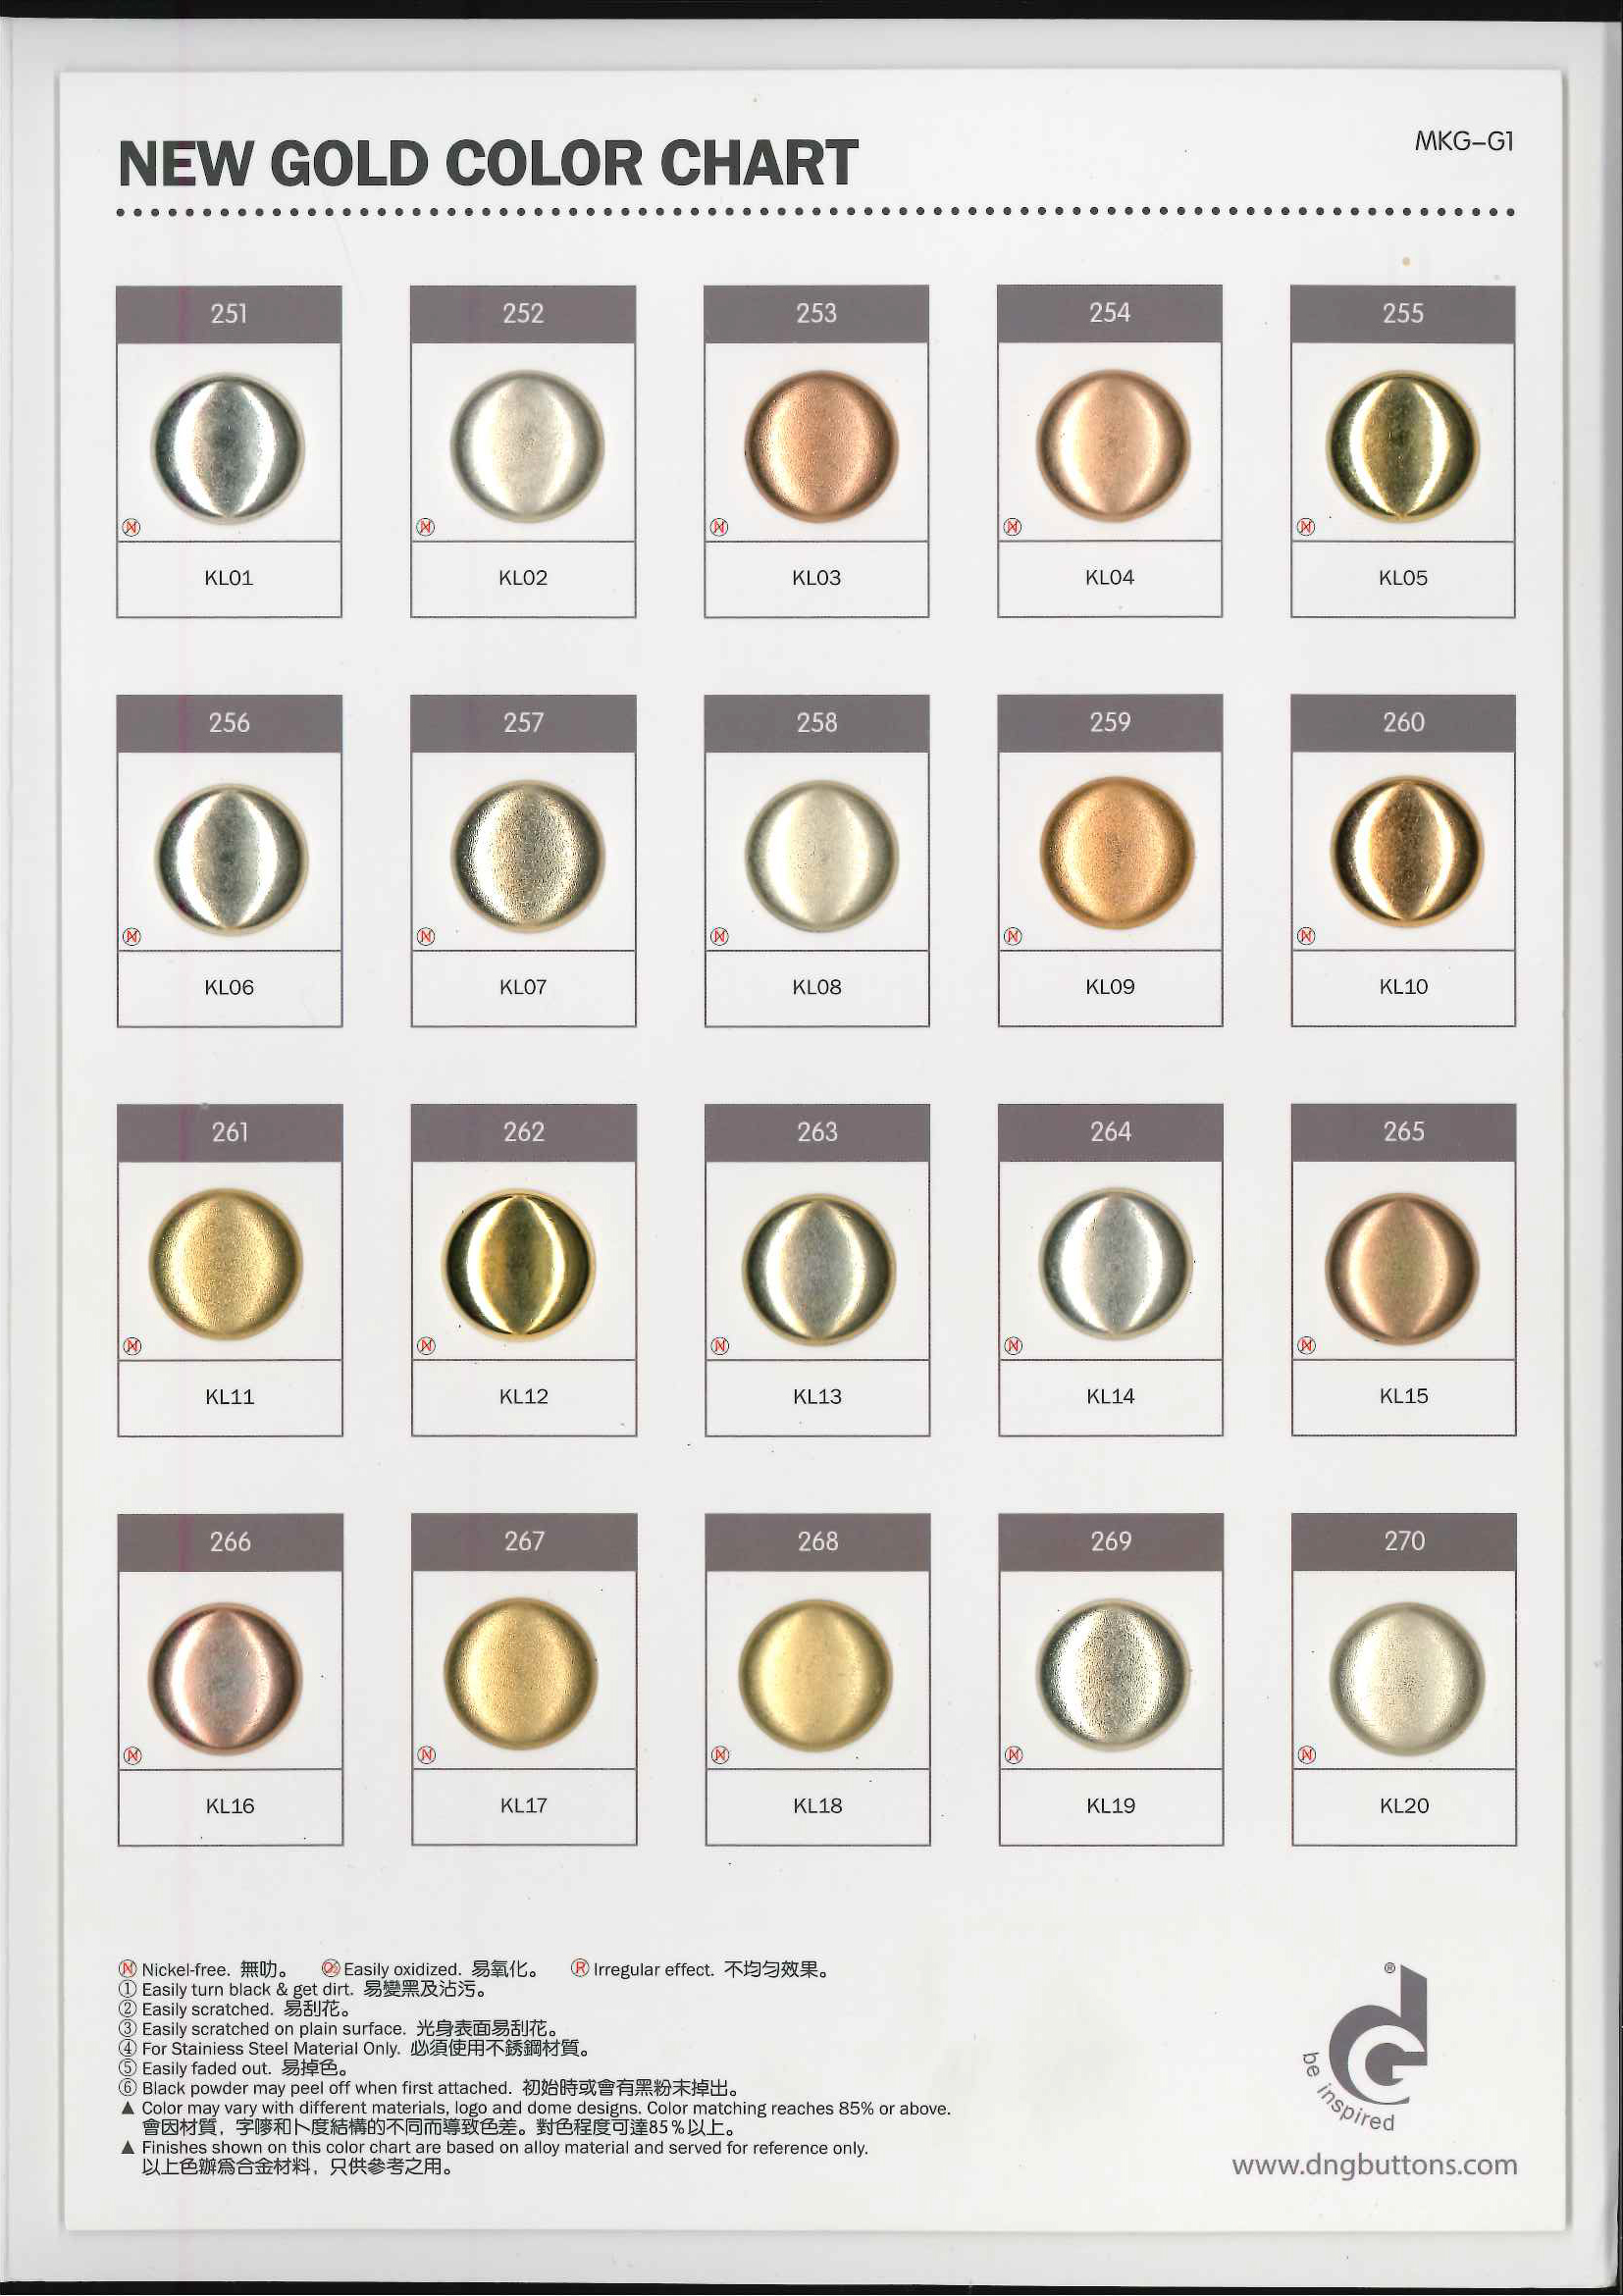 Color Chart | DNG BUTTONS